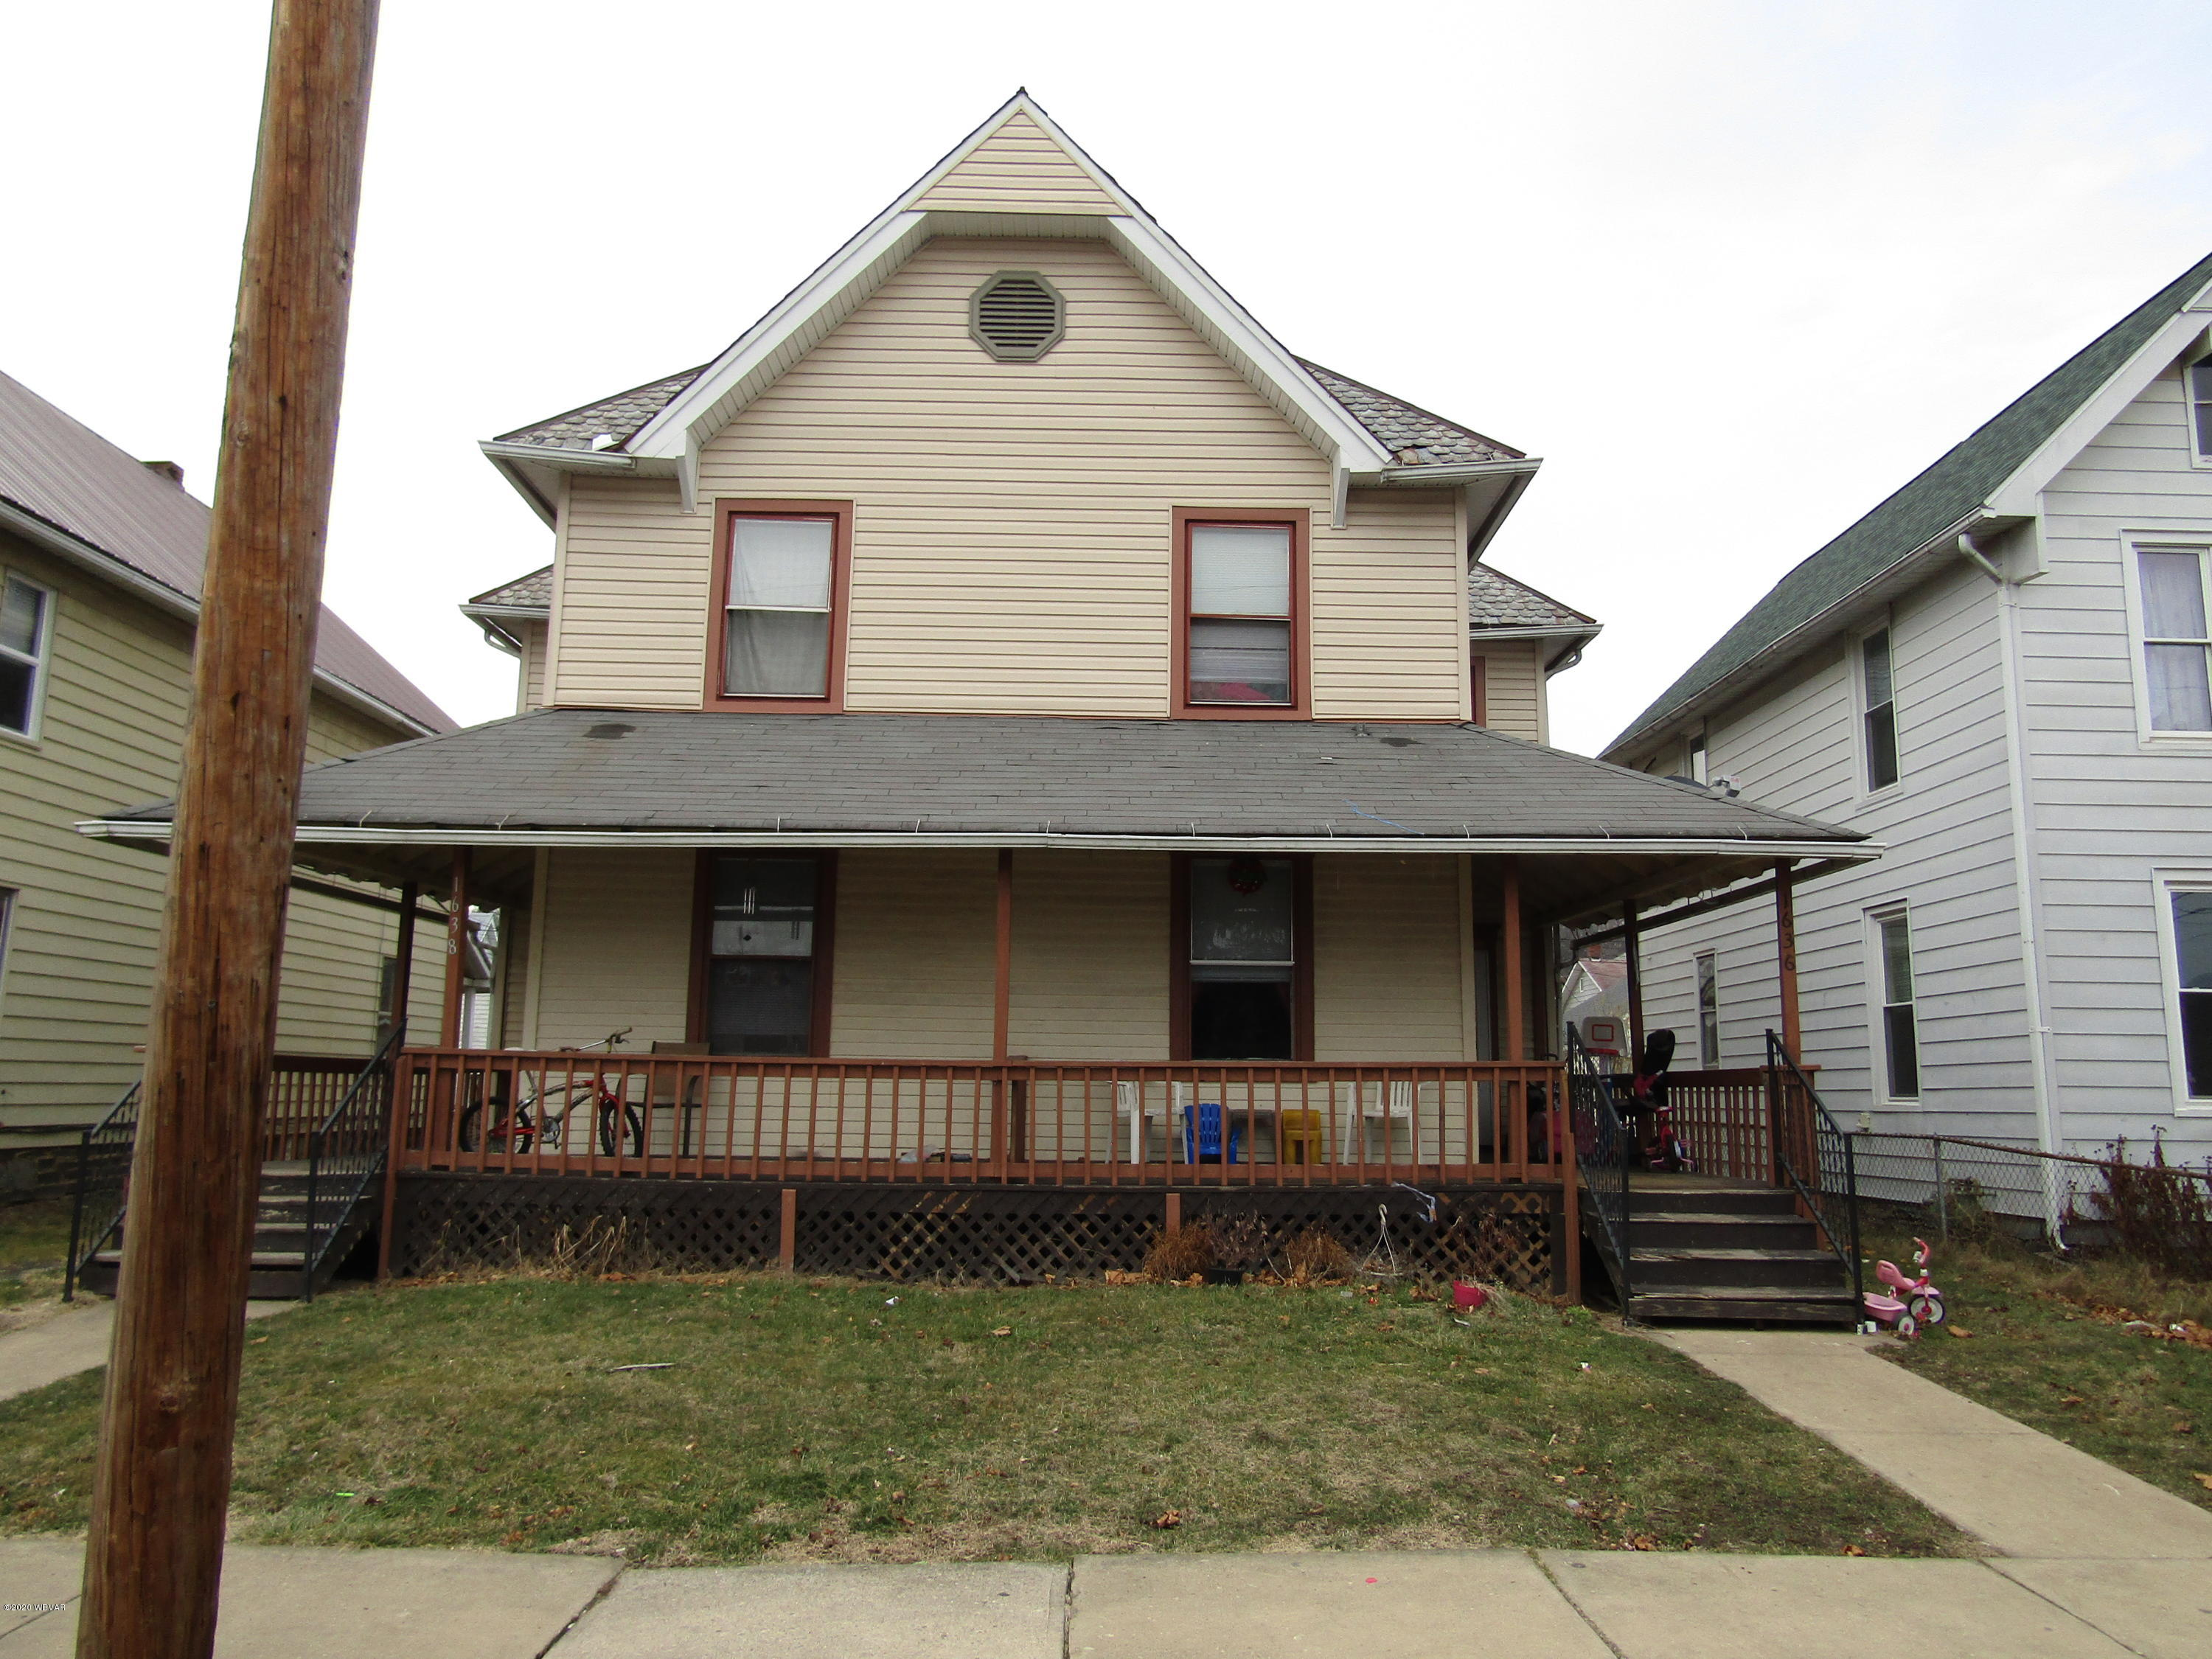 1636 -1638 MEMORIAL AVENUE, Williamsport, PA 17701, ,Multi-units,For sale,MEMORIAL,WB-89579